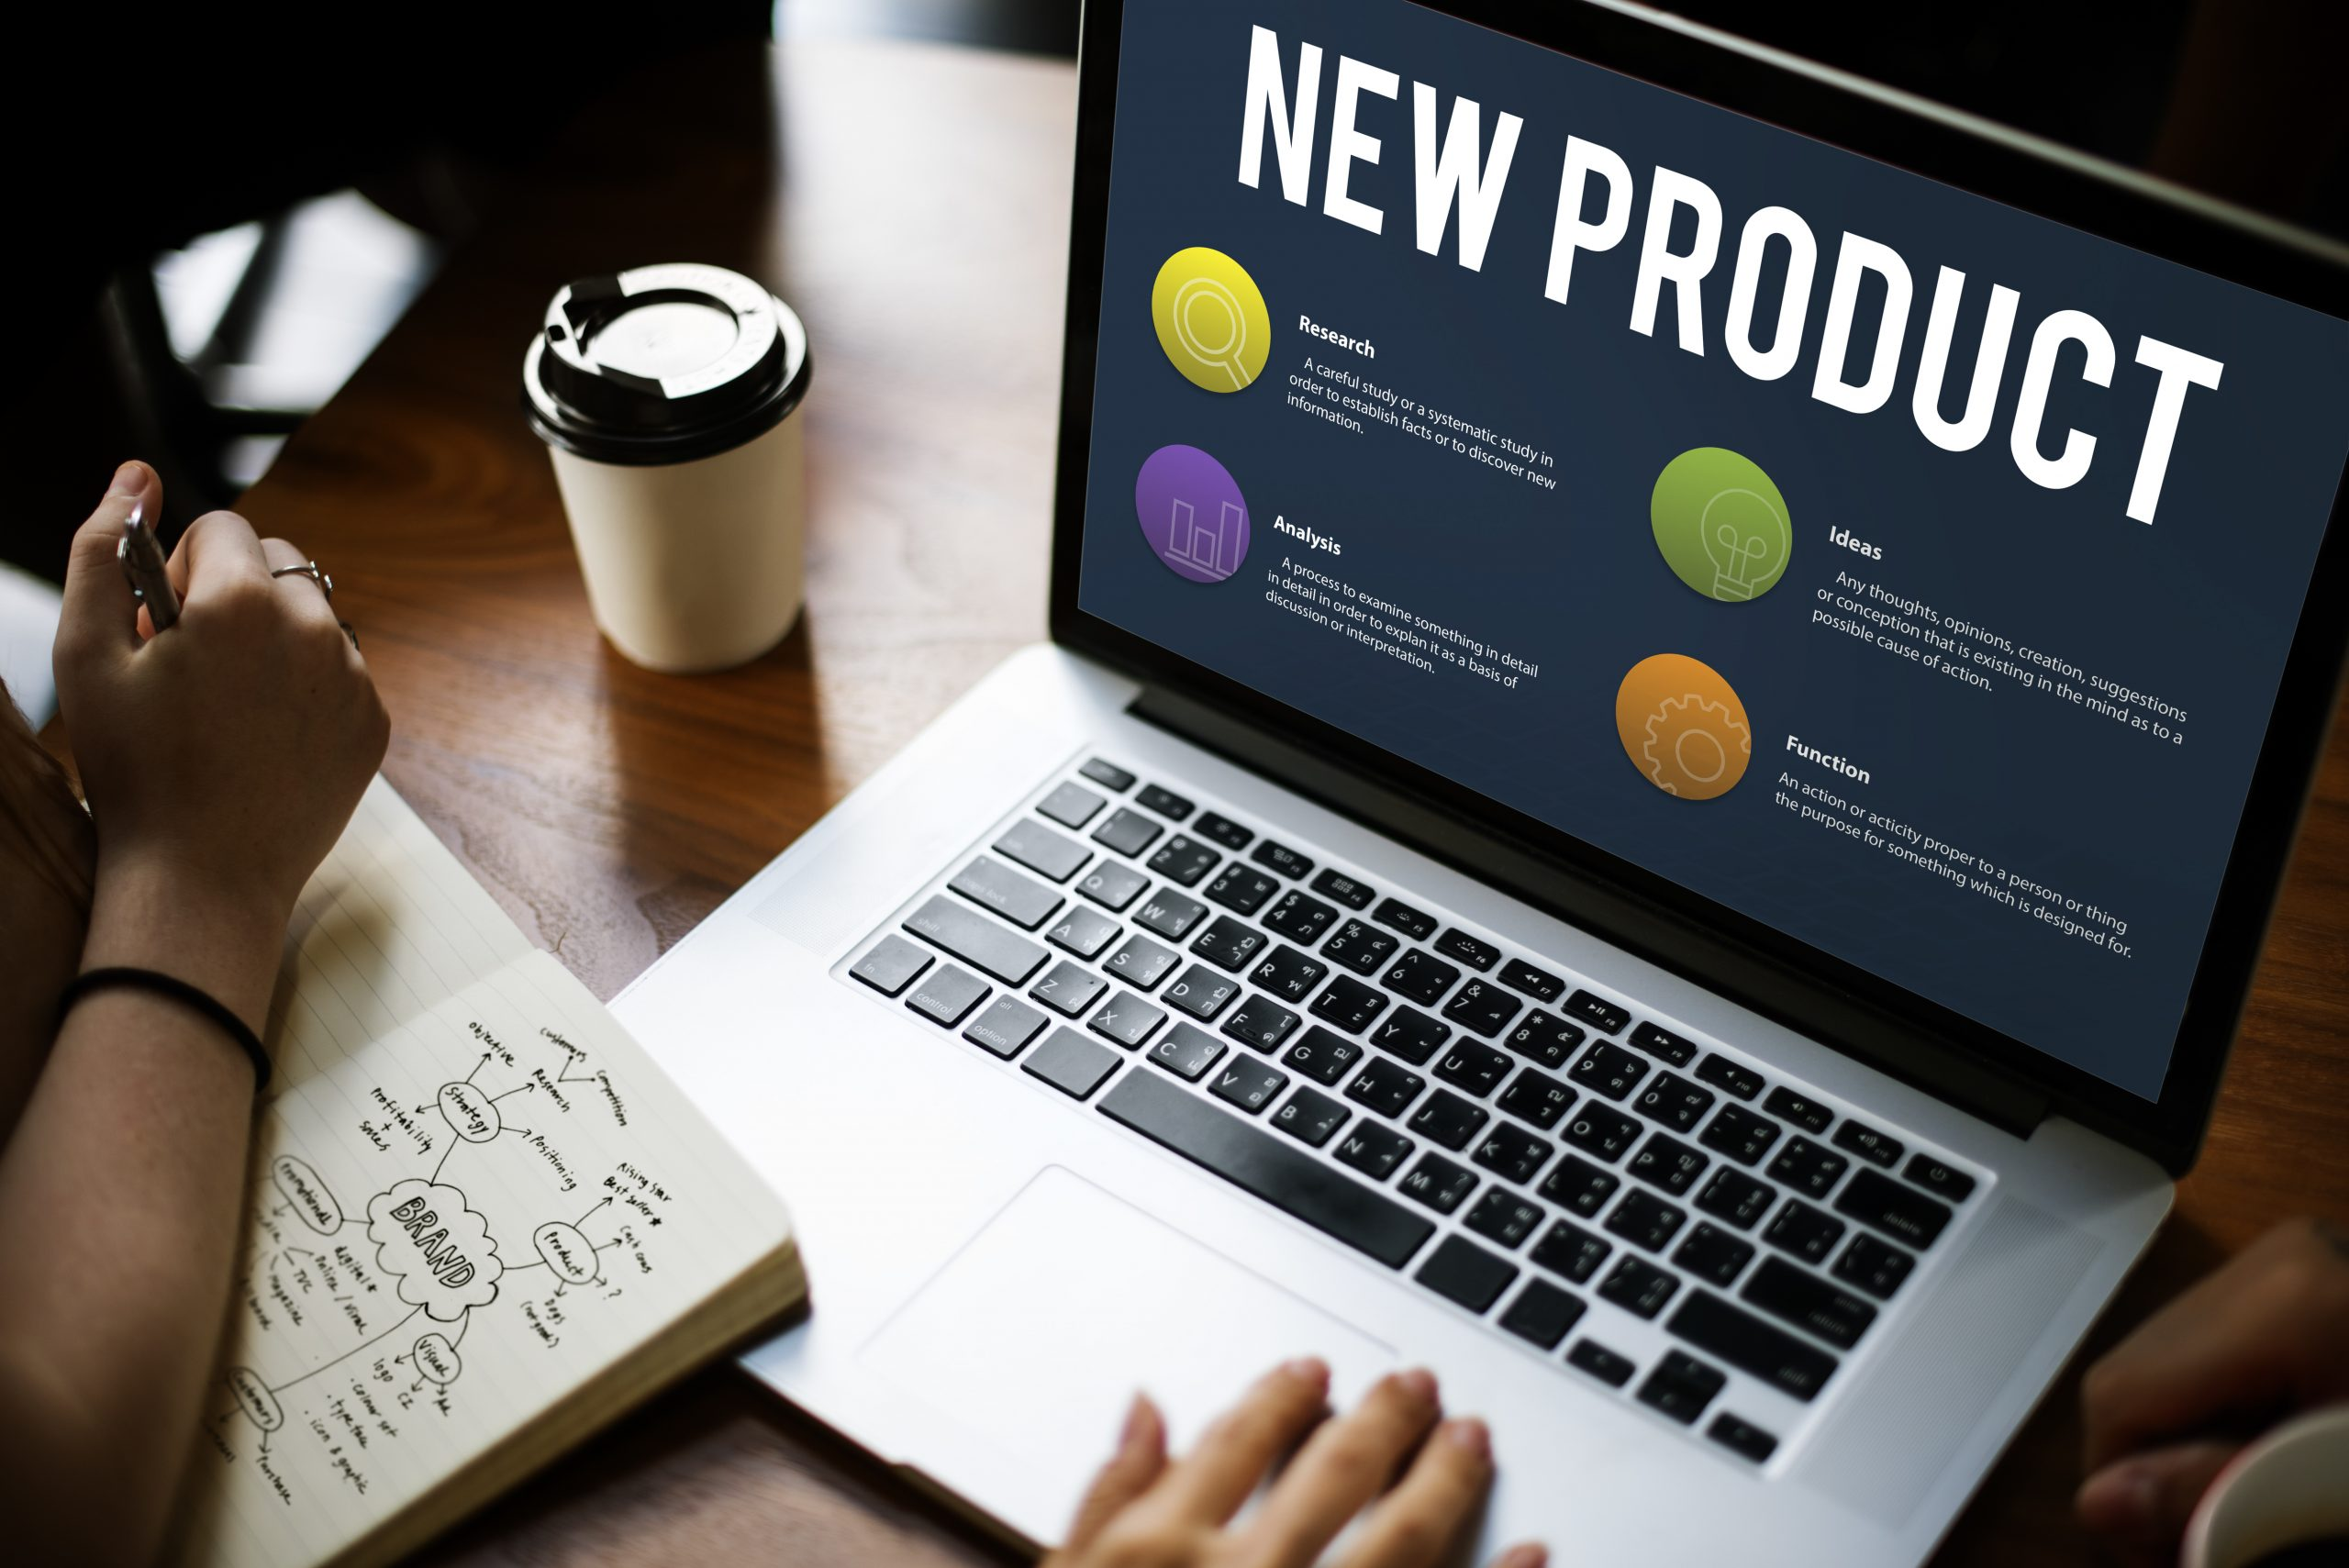 2021 Black Friday Marketing Strategy (2) Cyber Monday new products